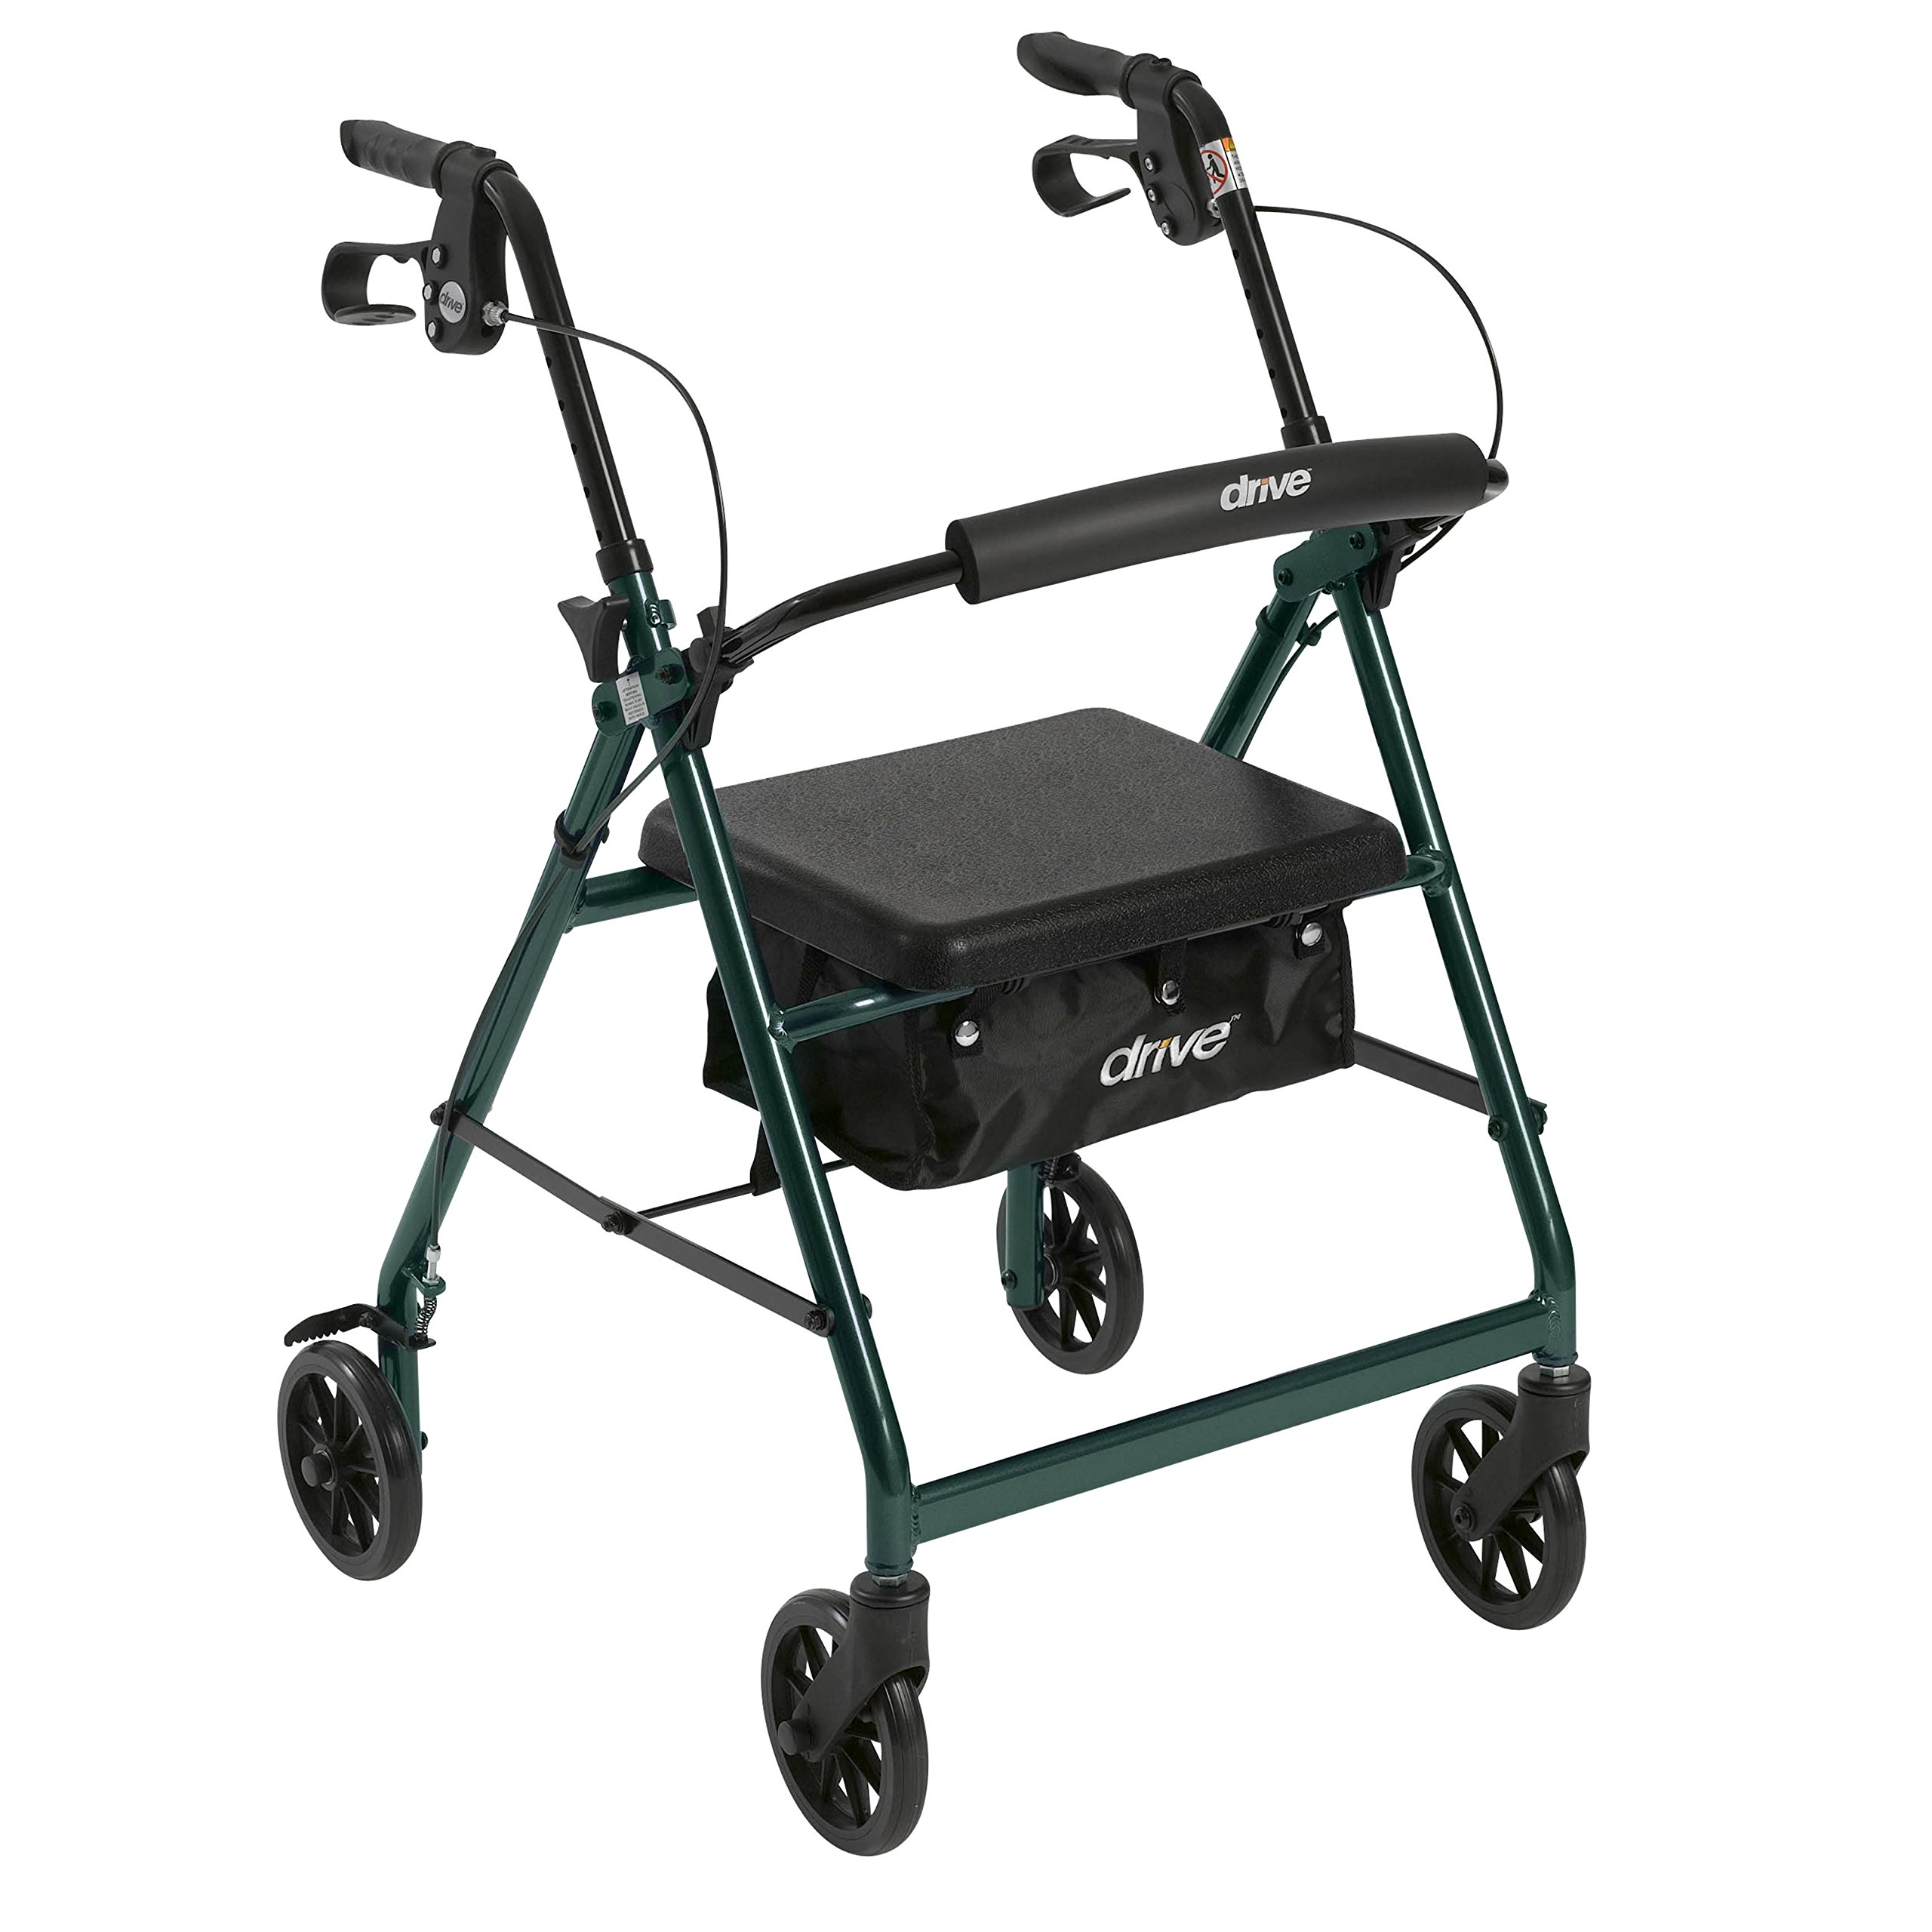 Drive Medical Aluminum Rollator Walker Fold Up and Removable Back Support, Padded Seat, 6'' Wheels, Green by Drive Medical